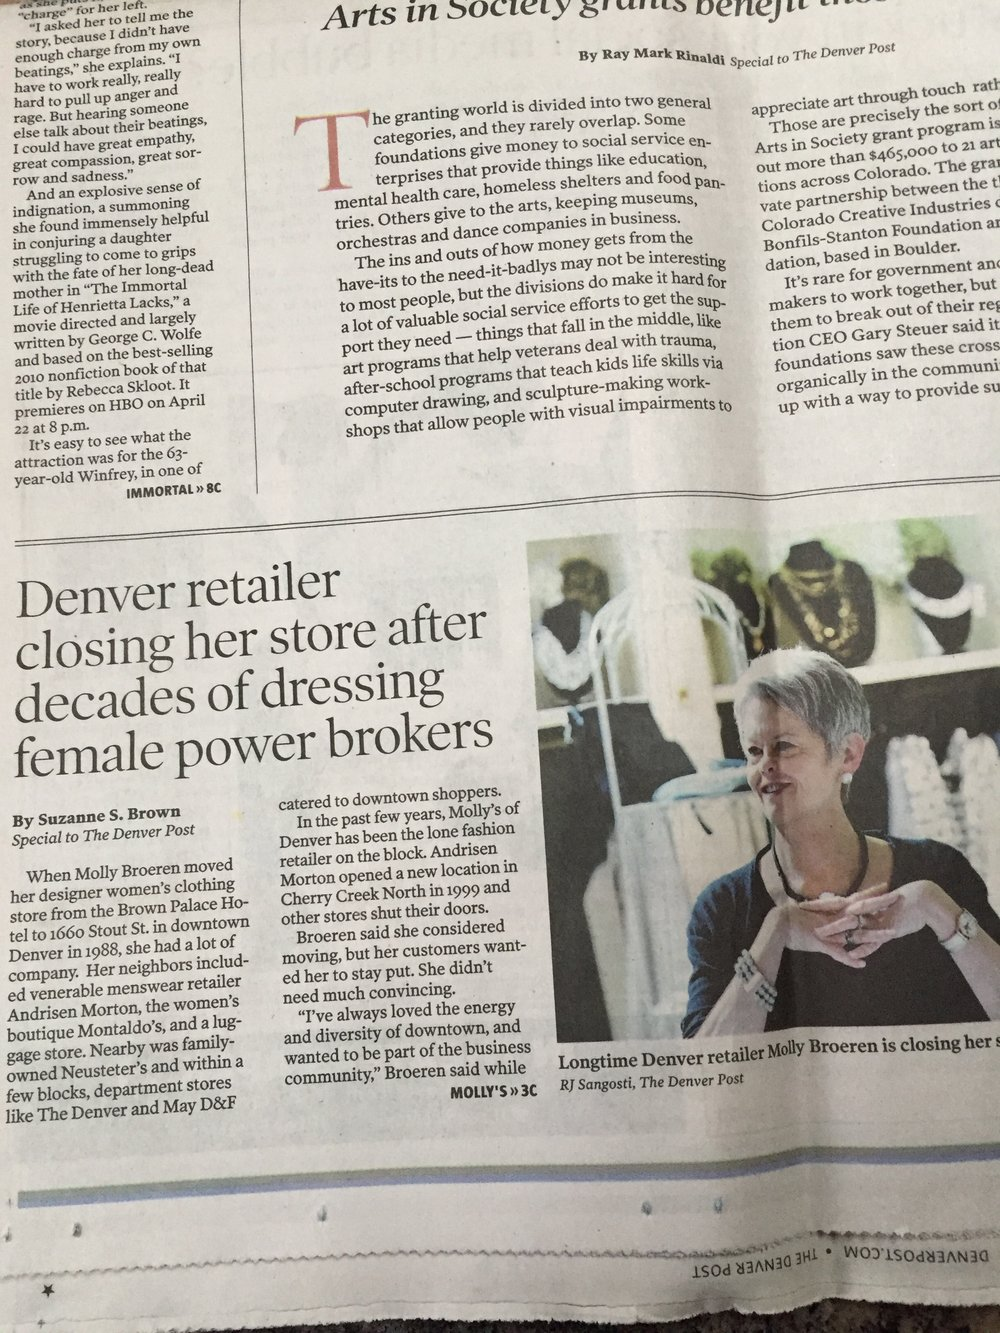 Molly's will be missed;  Denver Post story on retailer closing after 35 years in business in Denver .